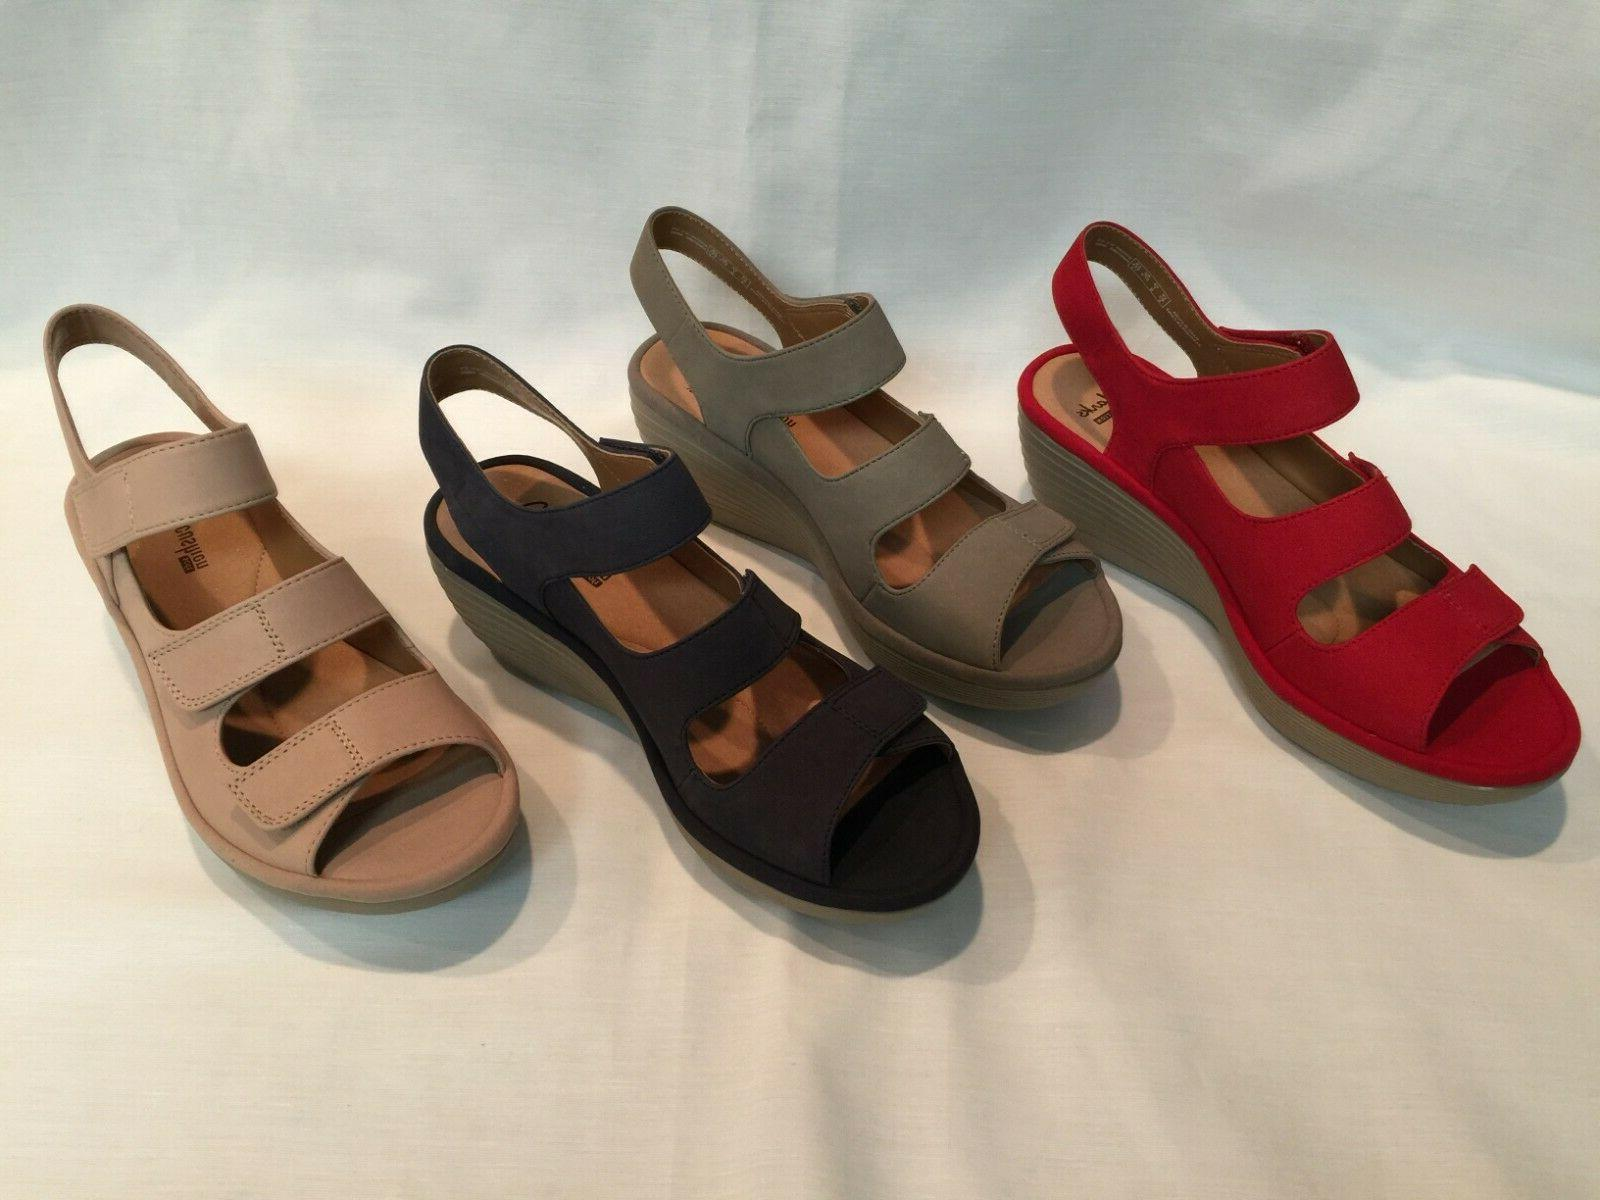 New! Collection Wedge - Juno, 7M, Color